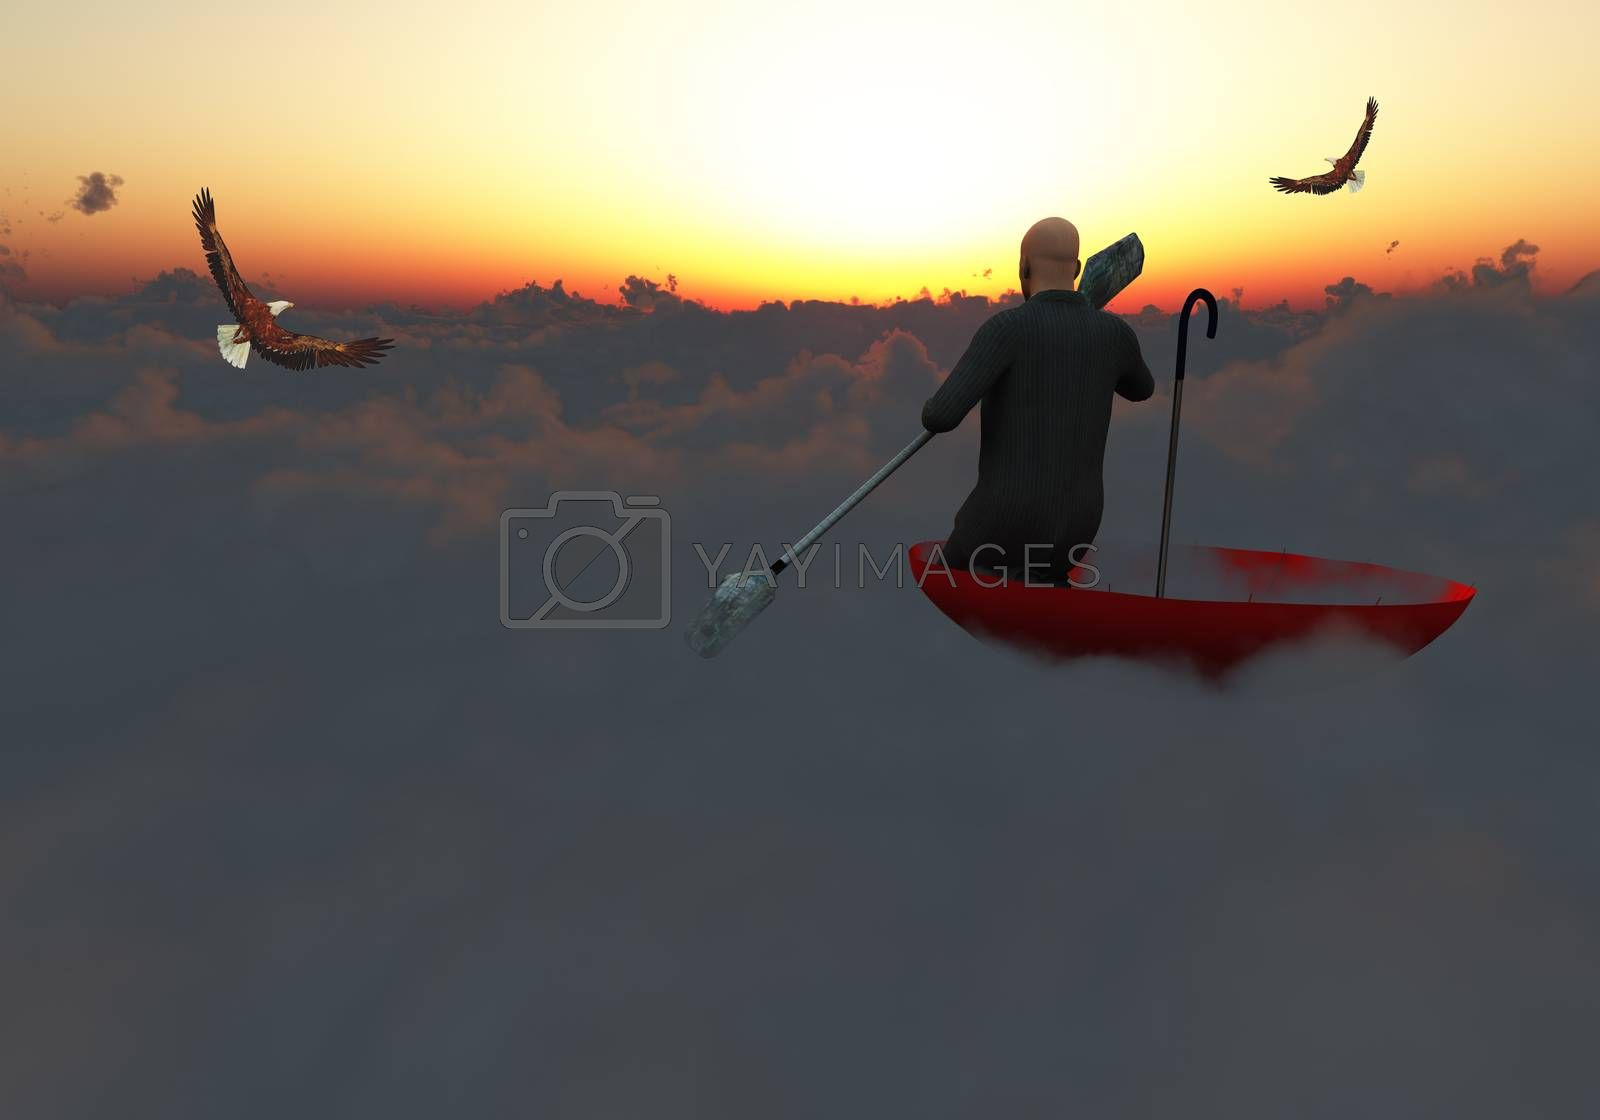 Escape from reality. Man in red ubrella floats in the clouds by applesstock